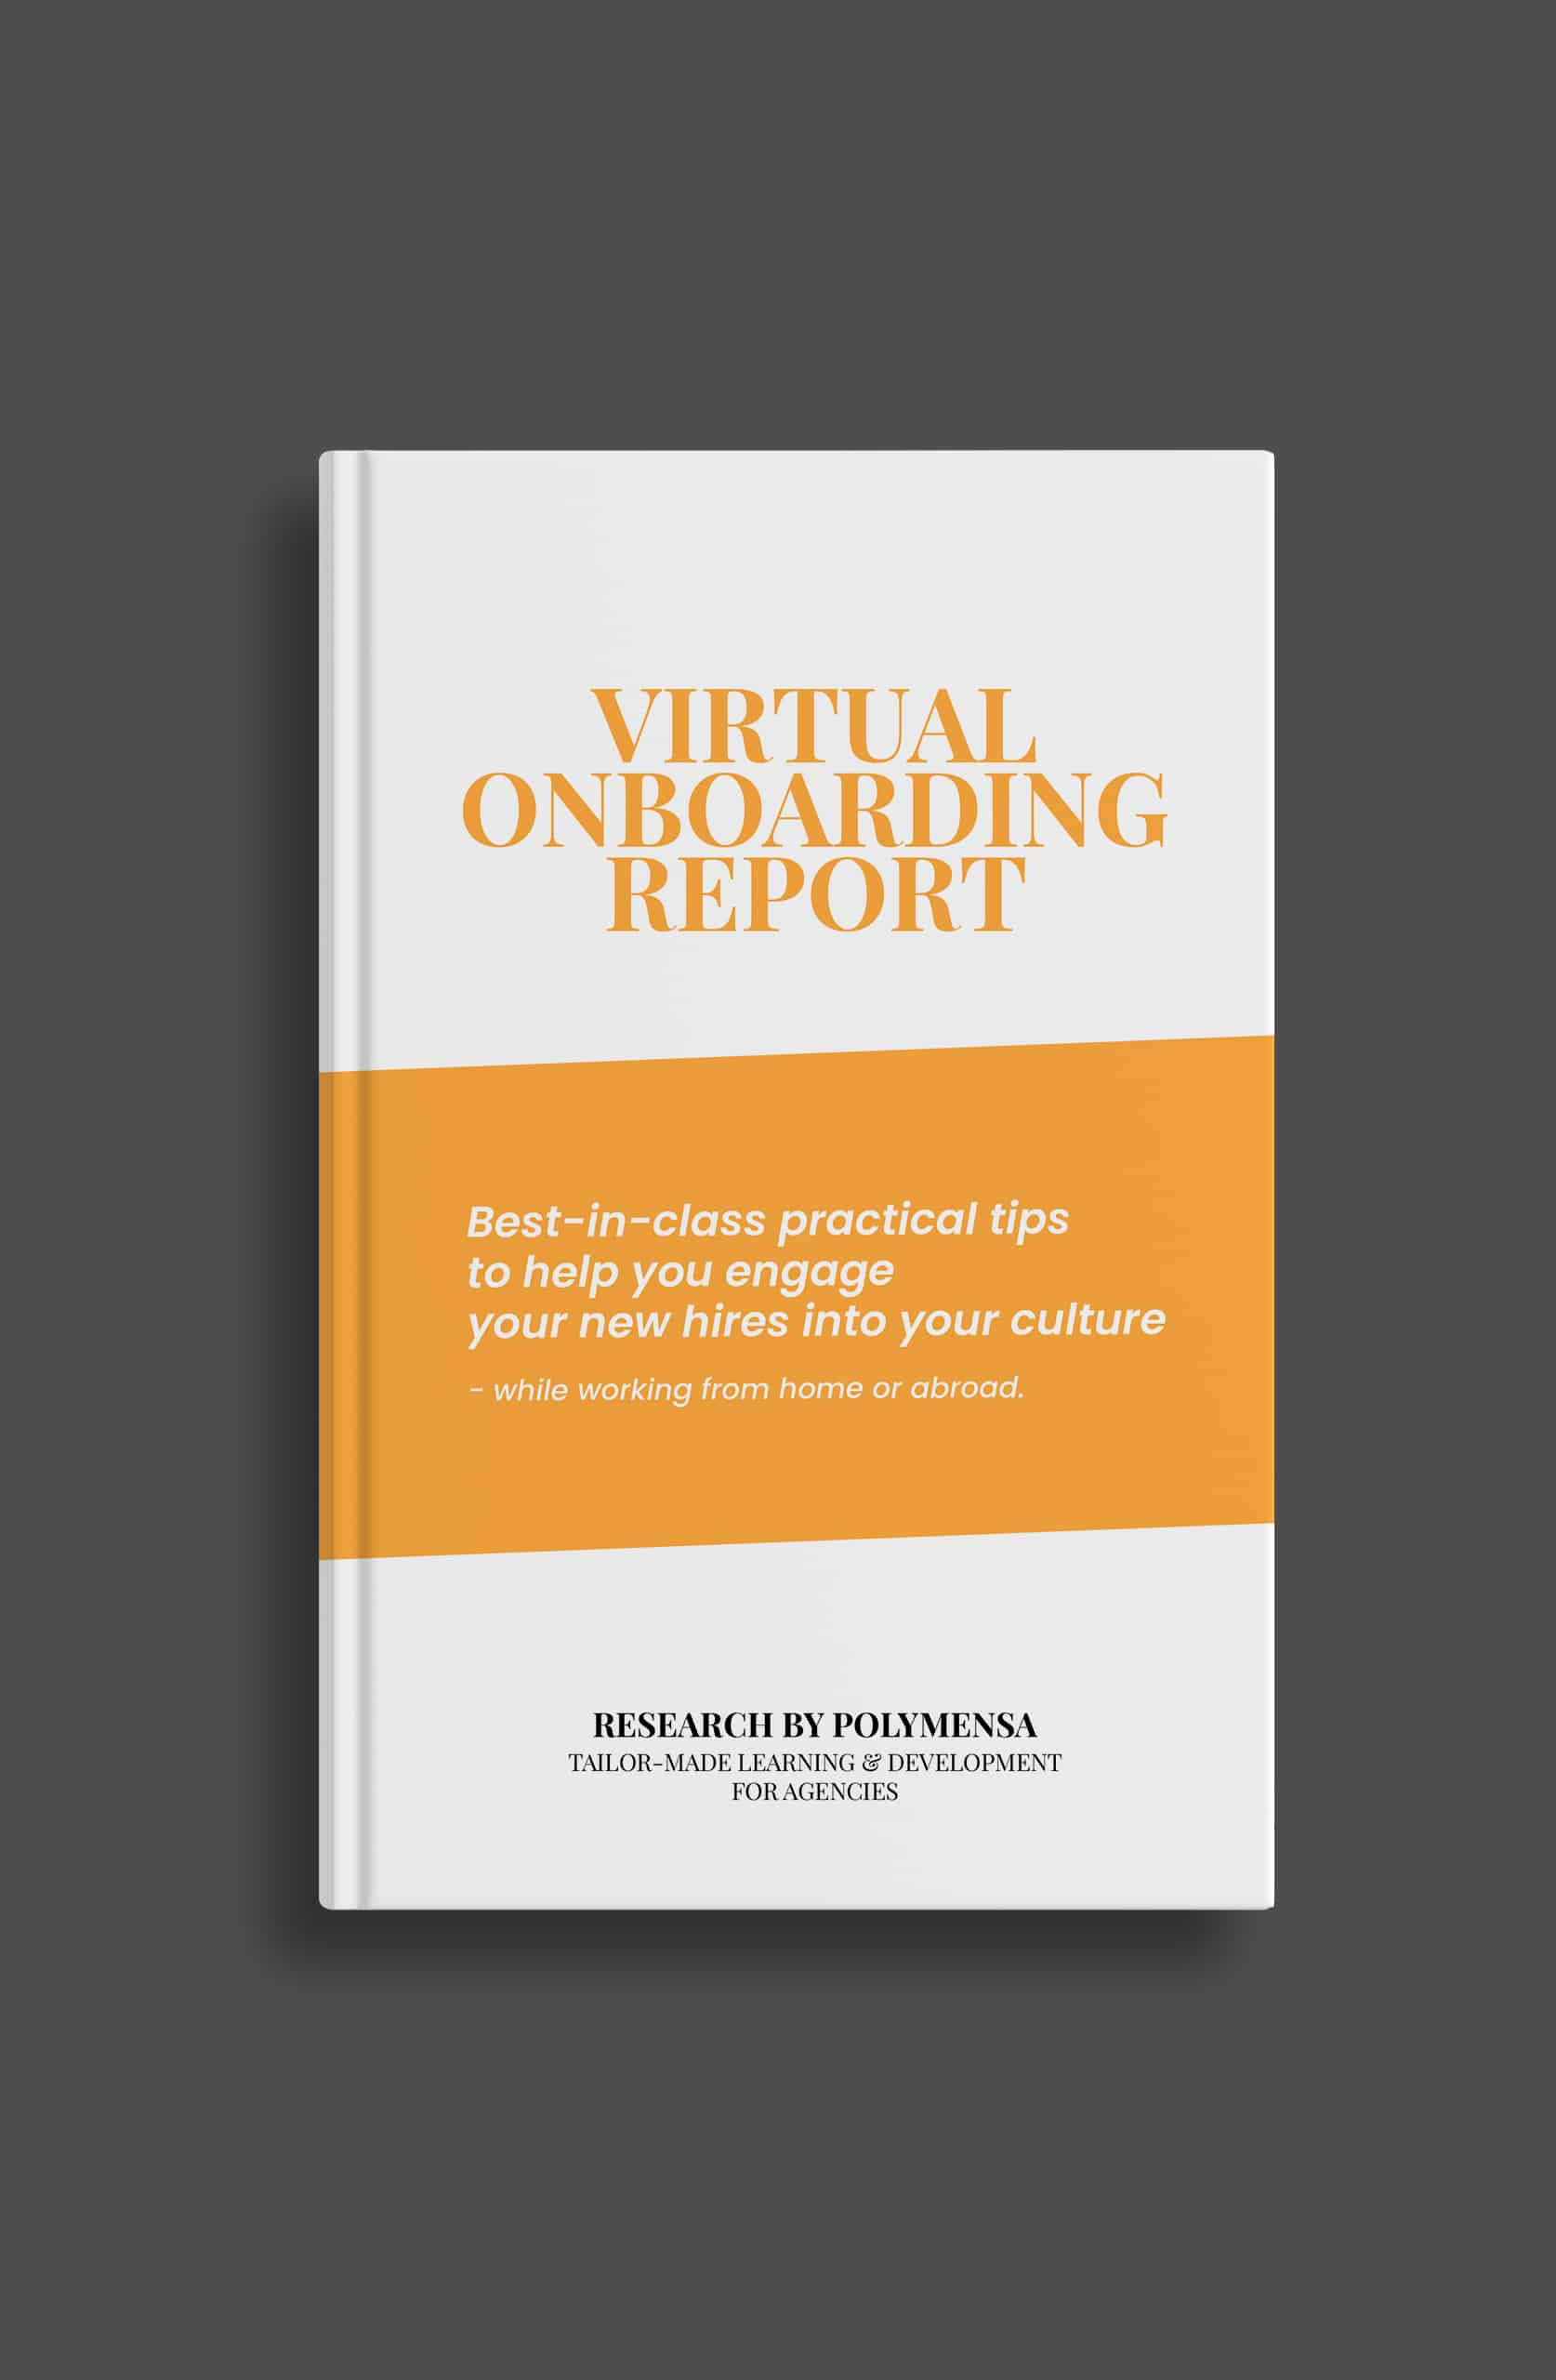 Virtual onboarding report for agencies 2021